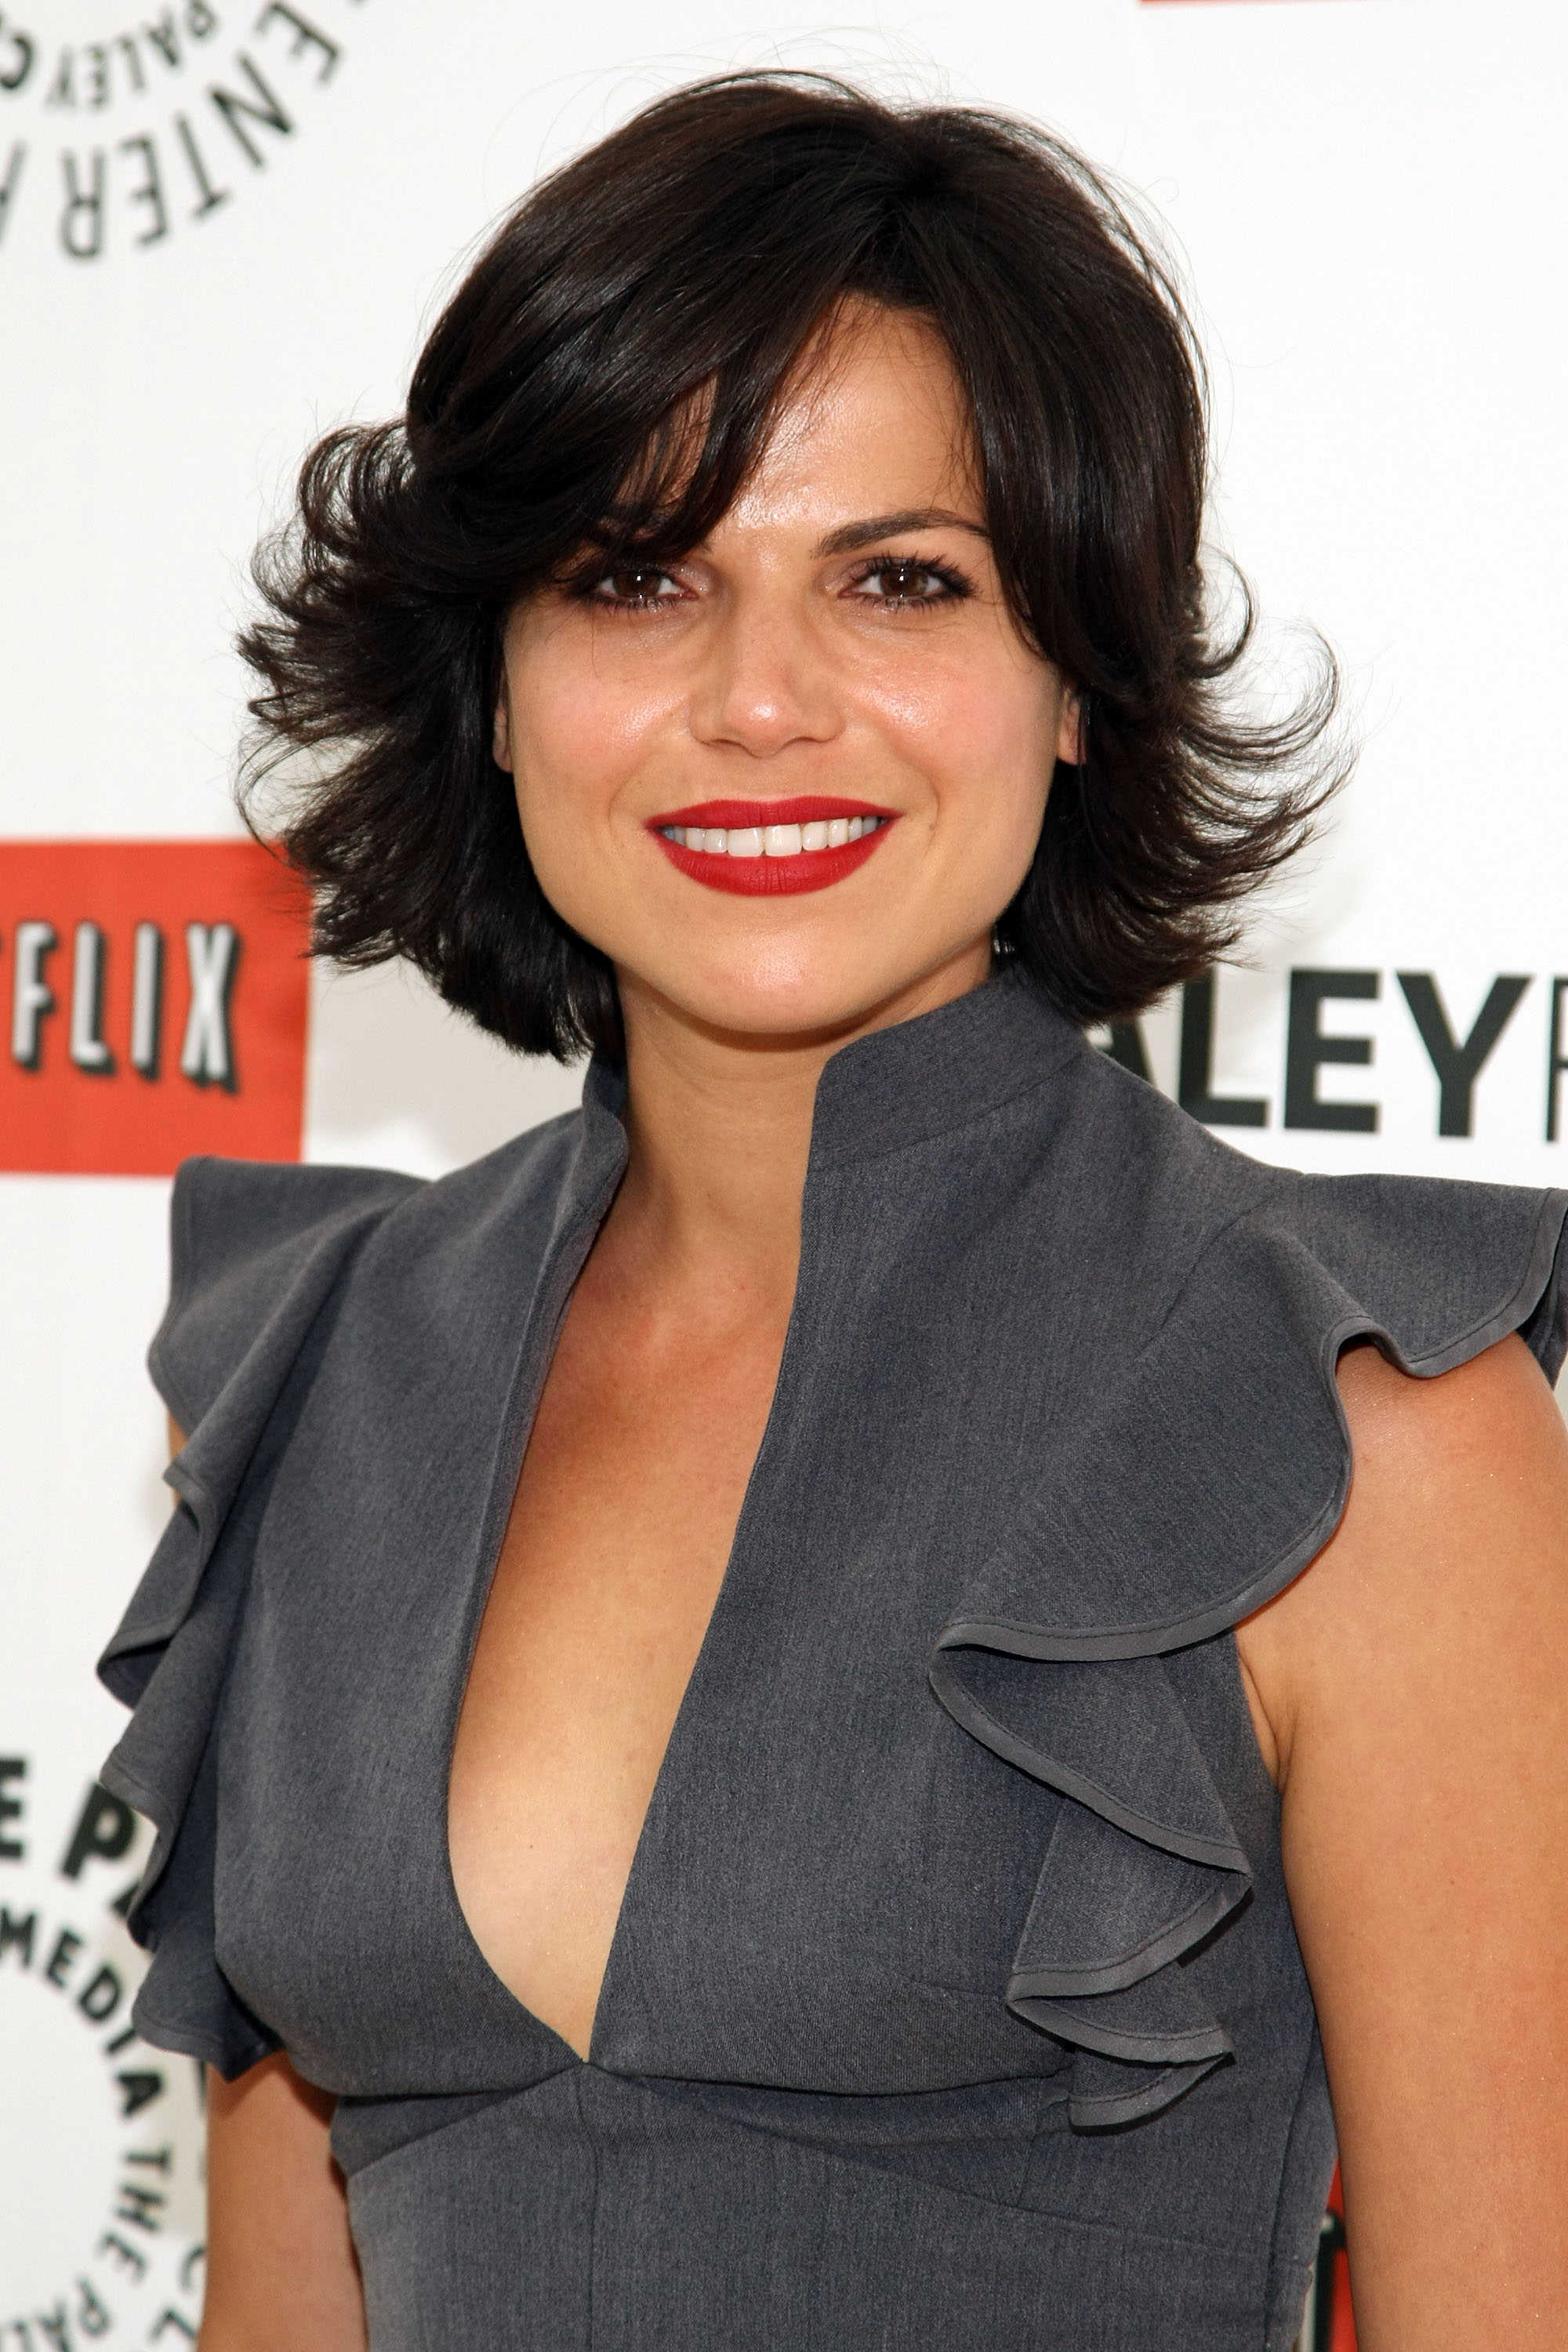 Lana Parrilla HD Wallpapers For Desktop Download